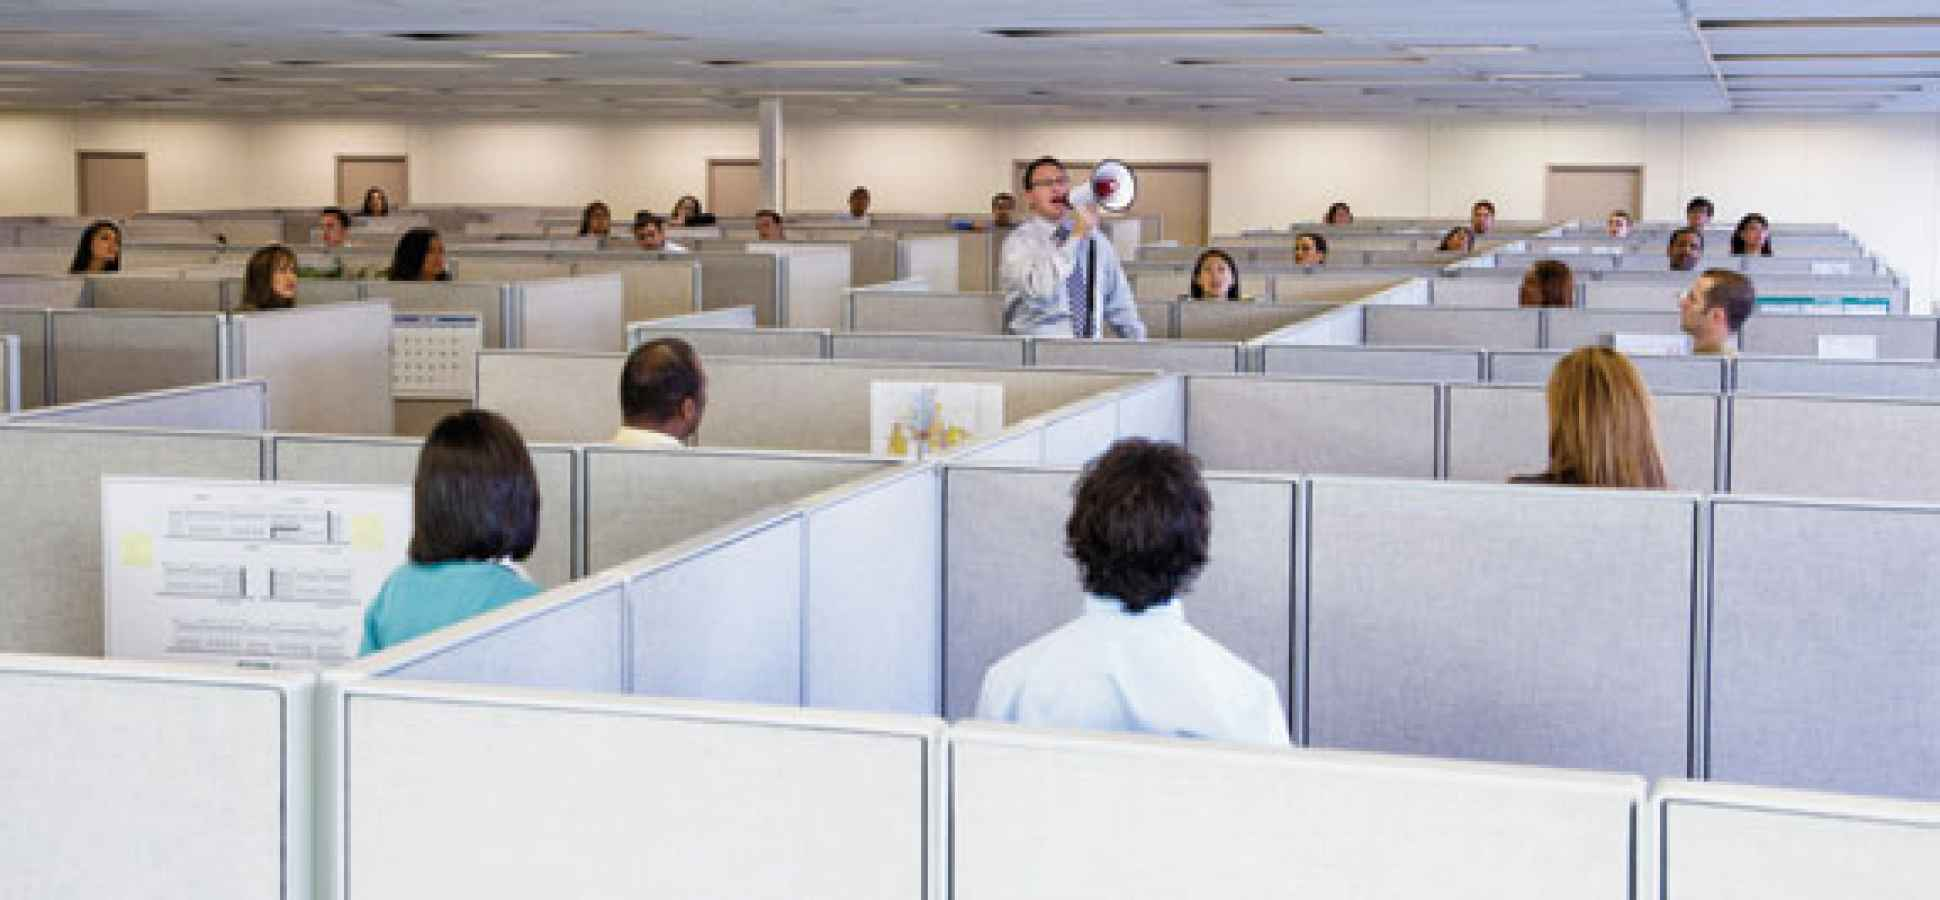 people in cubicles your office design is killing teamwork